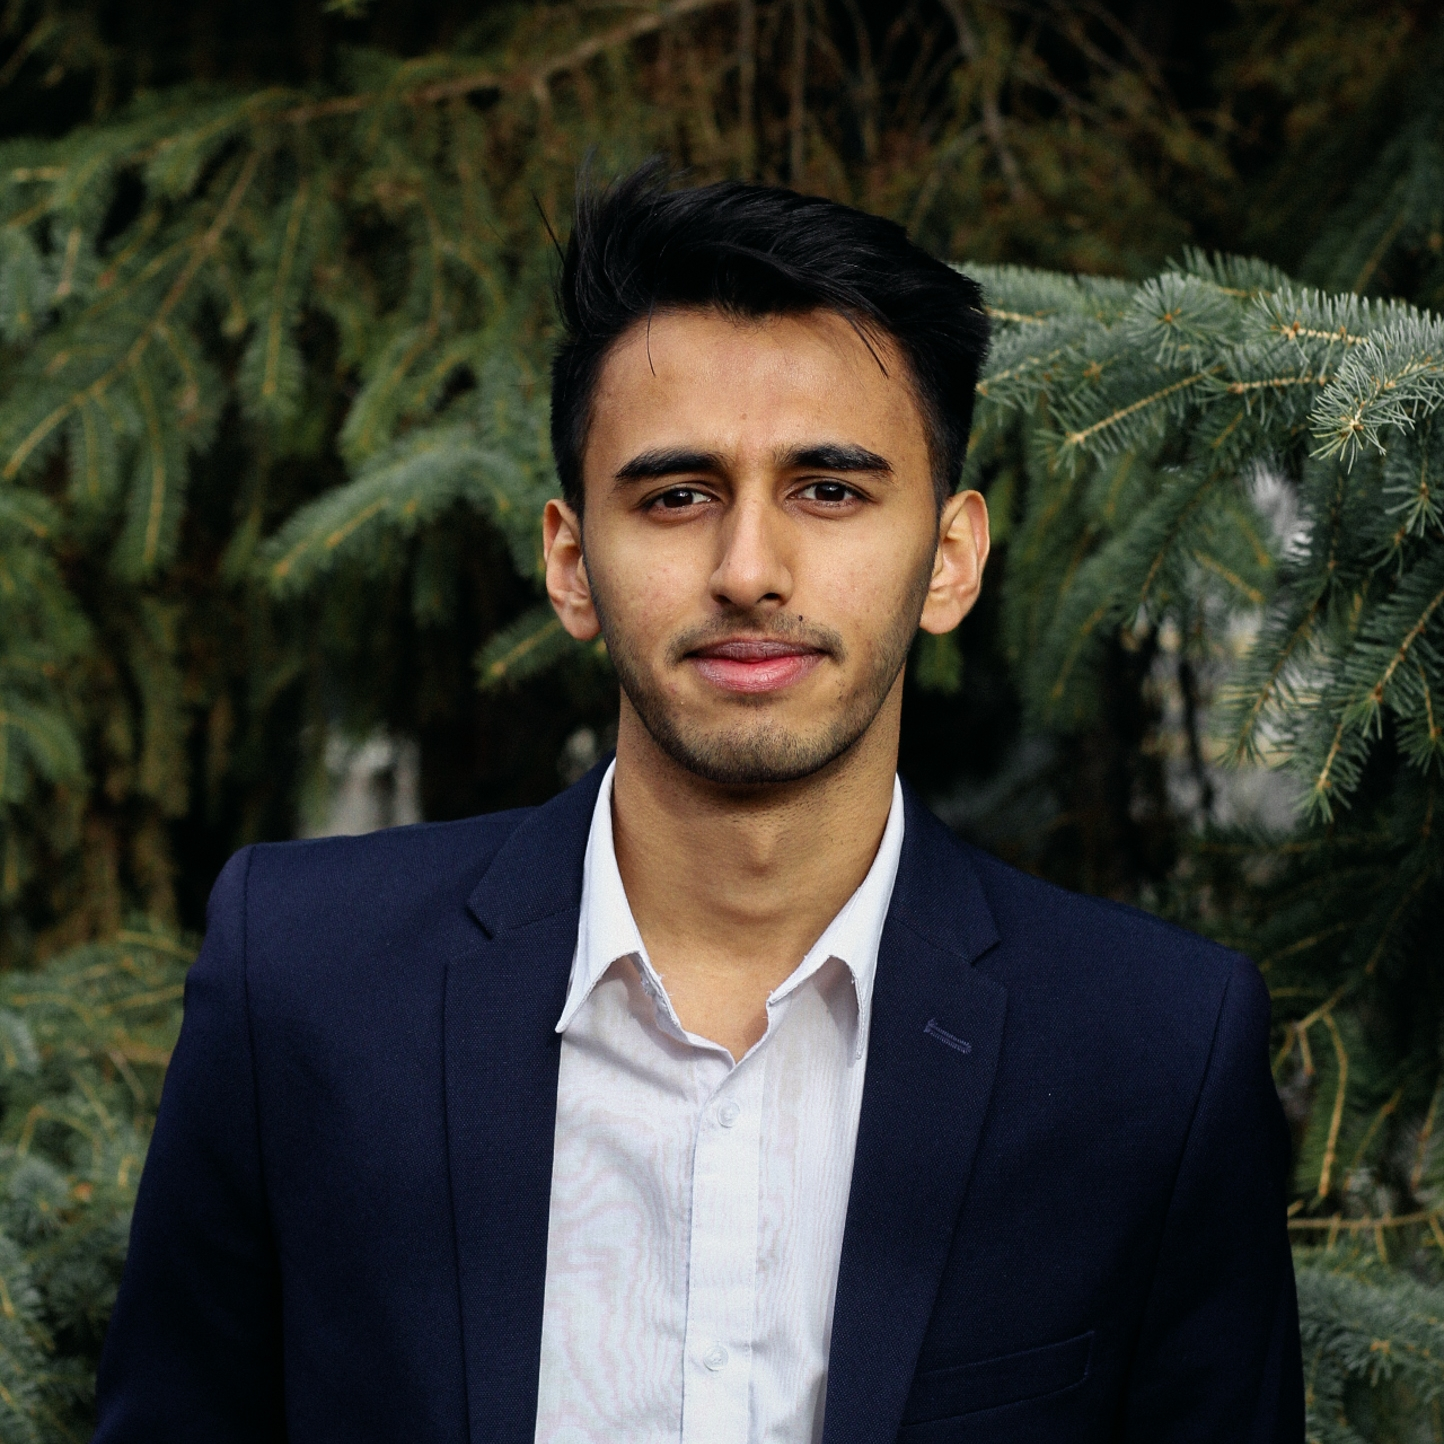 Aqua Caelum Project Leader:Jit Patel - Jit is currently studying in the Engineering Faculty, majoring in Mechanical Engineering. Something interesting about Jit is that he is a huge Lionel Messi fan. After graduation, he plans on attaining his MBA and a Master's Degree in Aerospace Engineering.